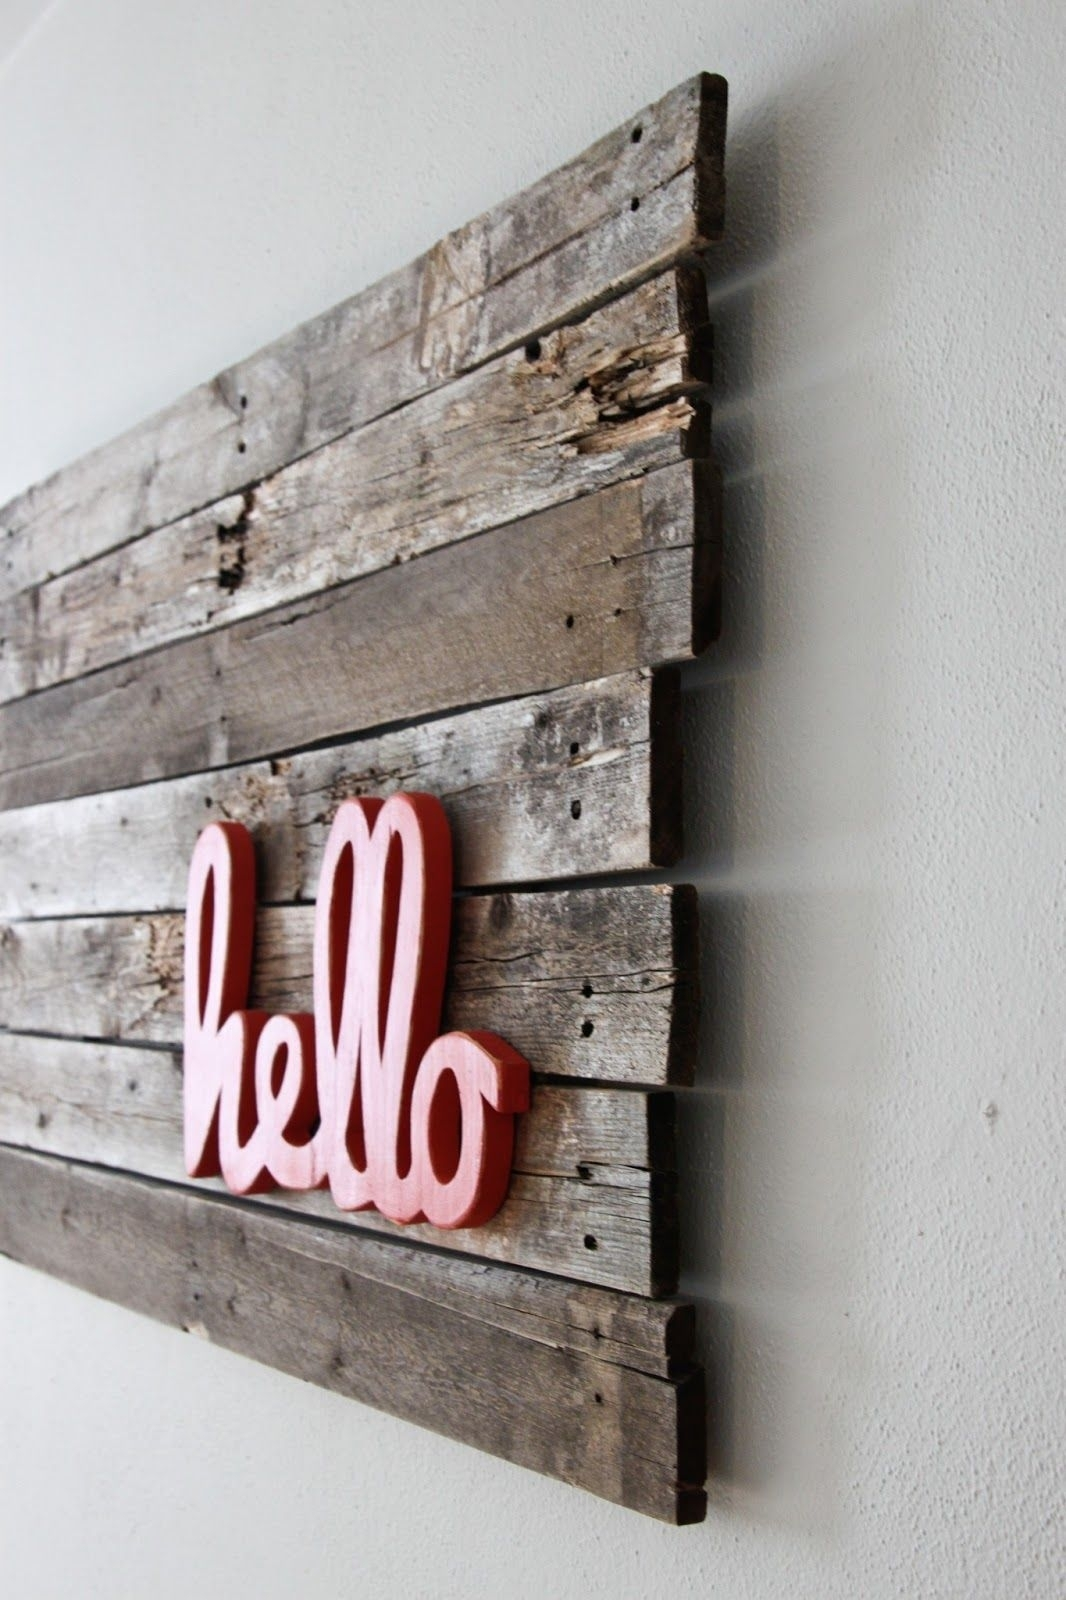 Upcycling Interiors: Brilliant Ideas For Pallet Wall Art | Pallet Within Most Recently Released Pallet Wall Art (View 11 of 15)